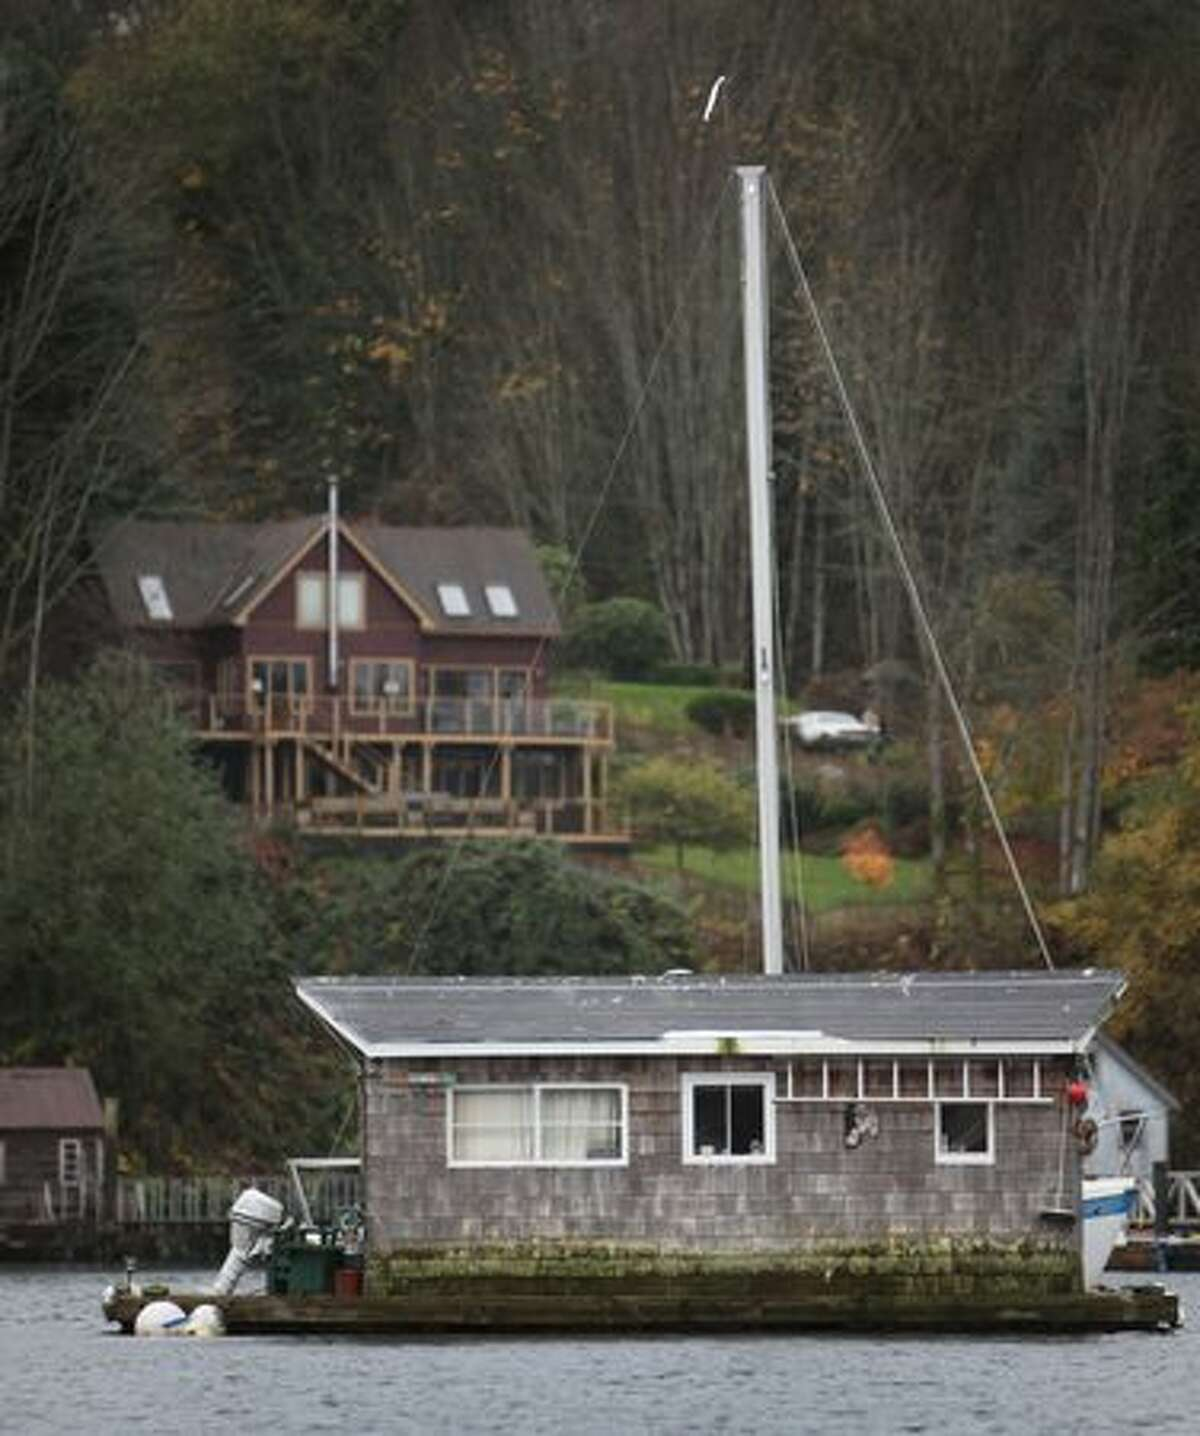 A house barge floats on Bainbridge Island's Eagle Harbor on Wednesday.